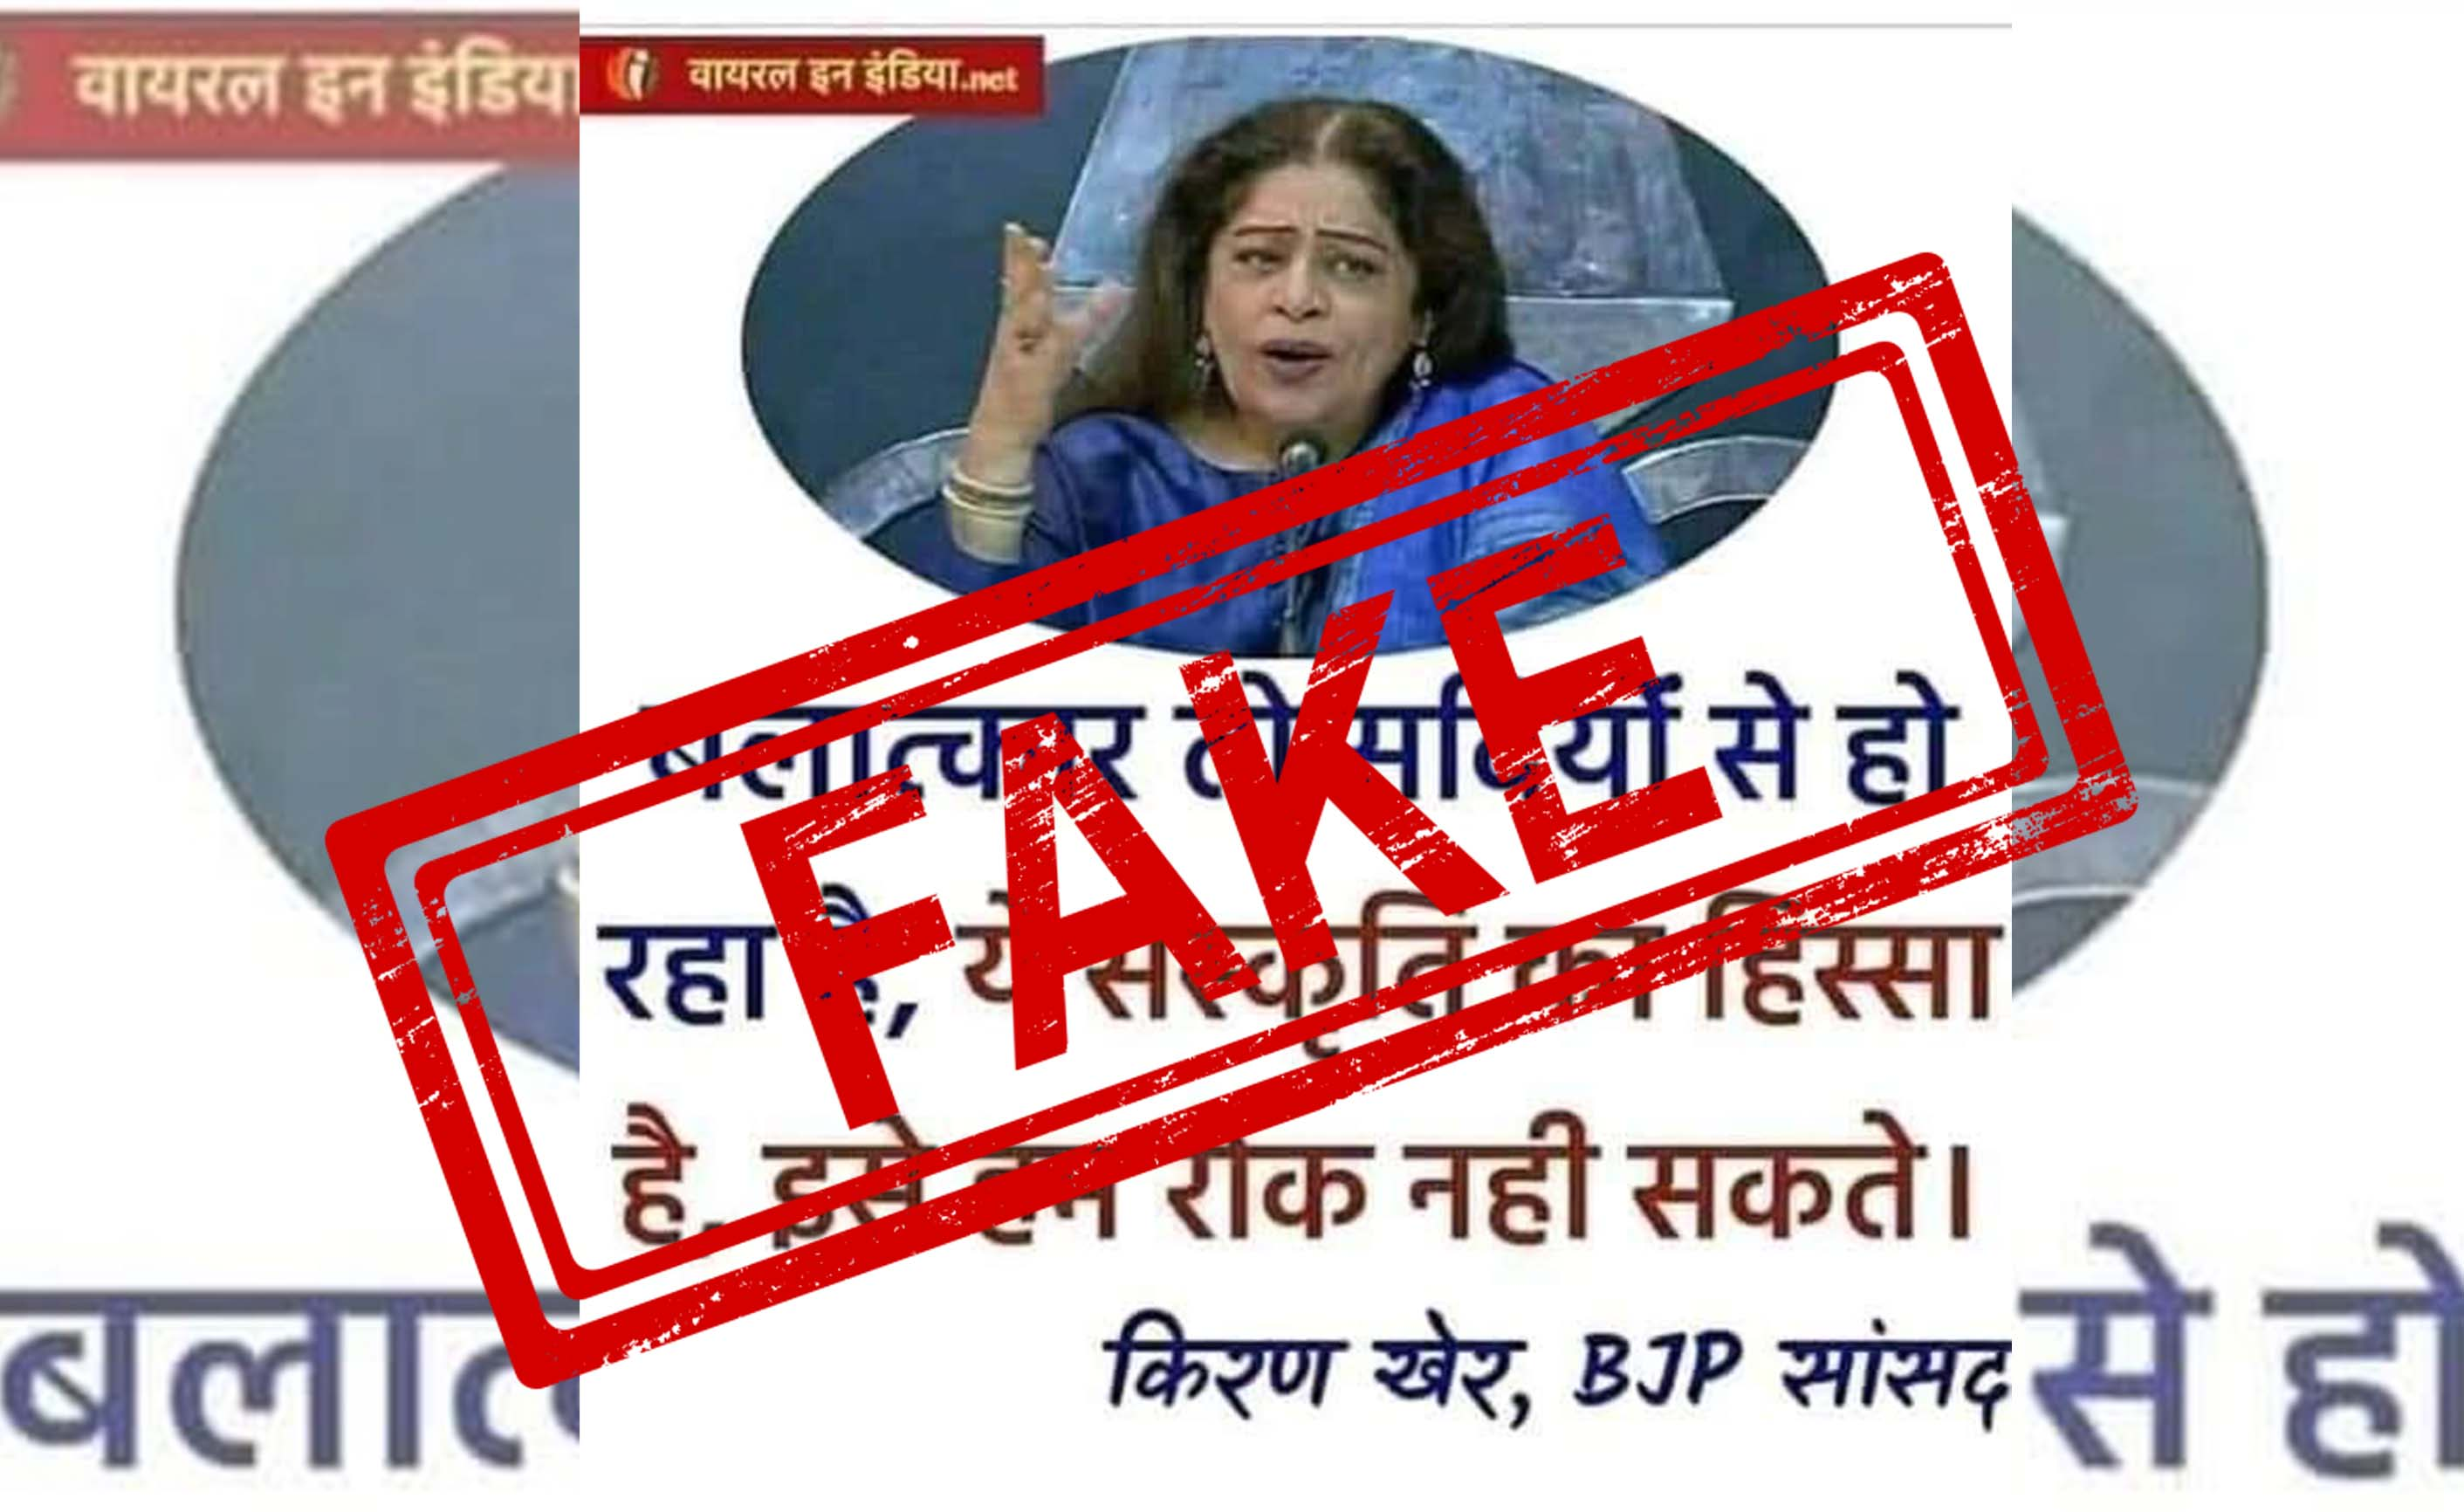 Kirron Kher, Rape, Statement, NewsMobile, Mobile, News, India, Fact Check, Fact Checker, India, Fact Check, Fake